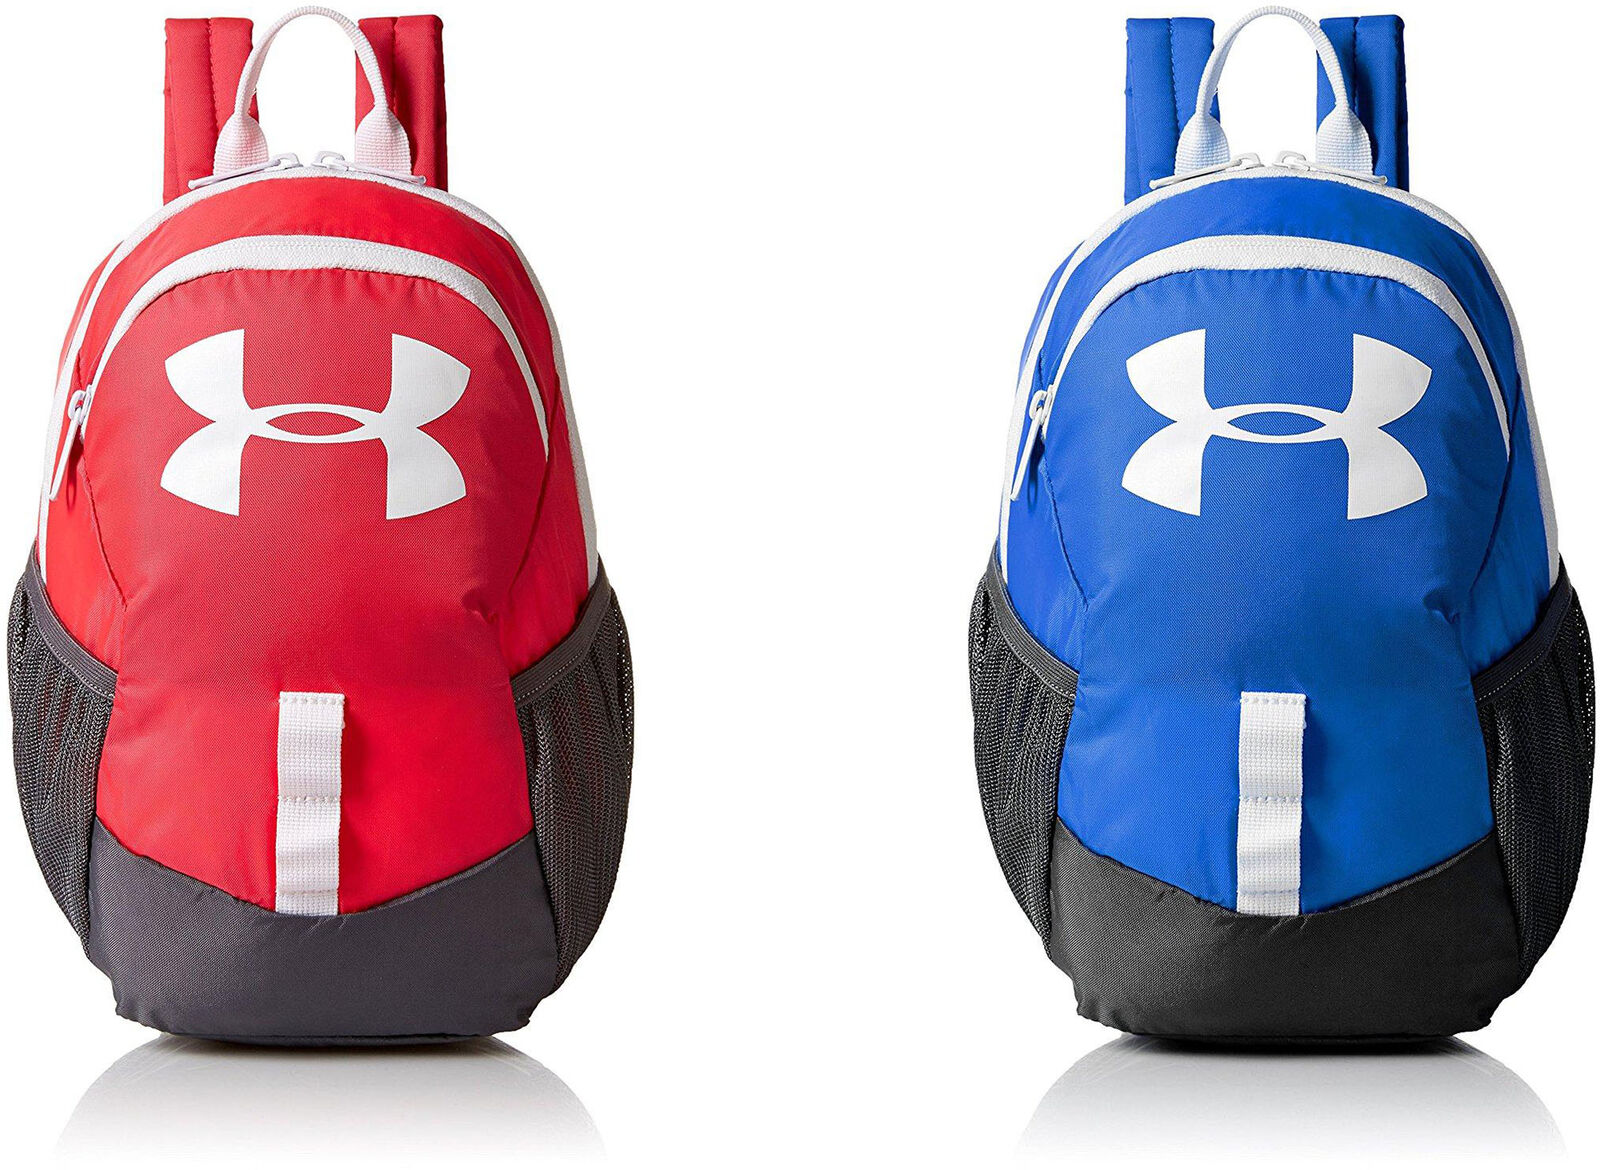 Details about Under Armour Unisex Kids' Small